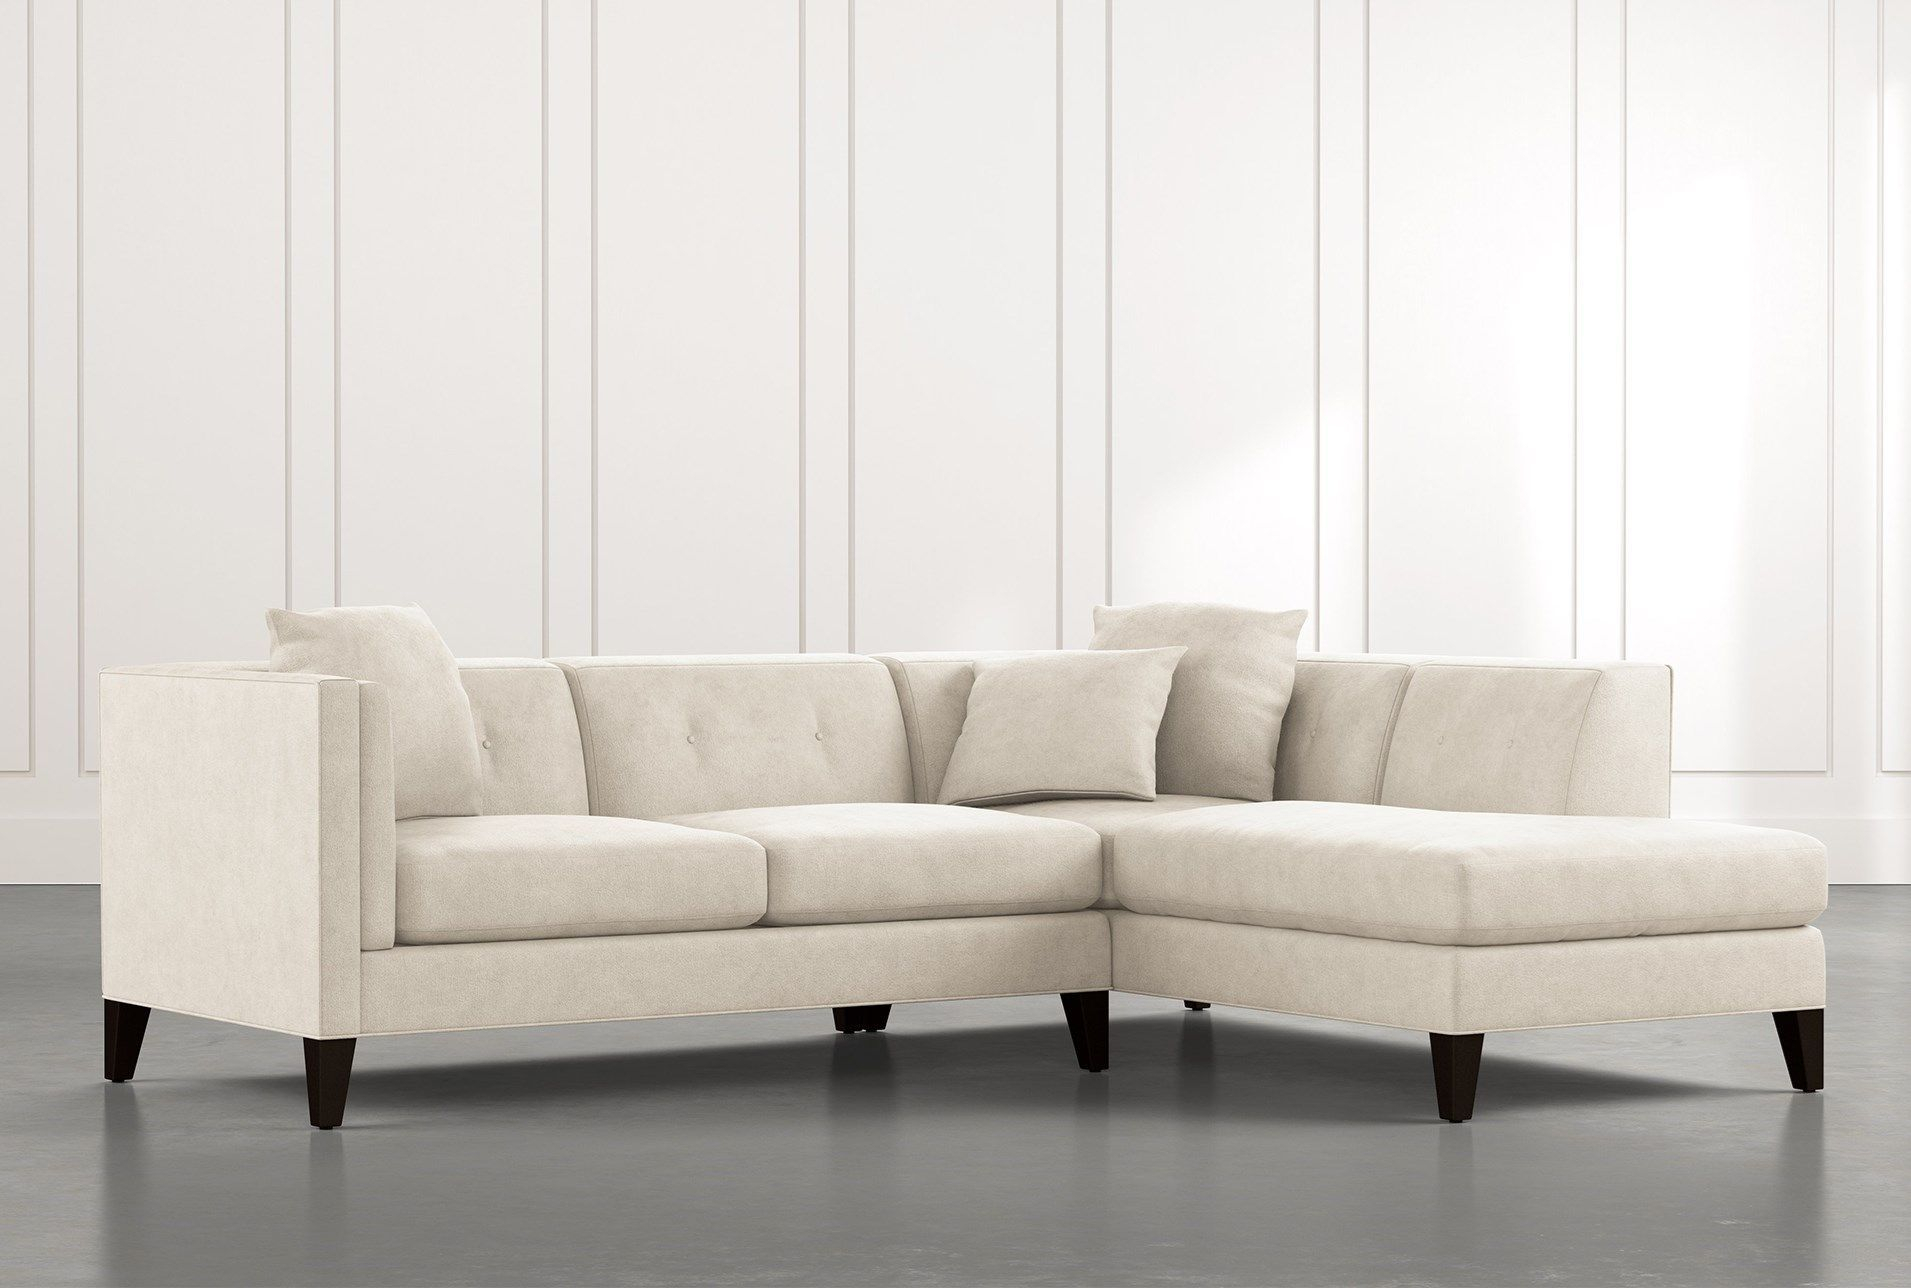 Avery Ii Beige 2 Piece Sectional Sofa With Right Arm Regarding Avery 2 Piece Sectionals With Raf Armless Chaise (View 2 of 15)